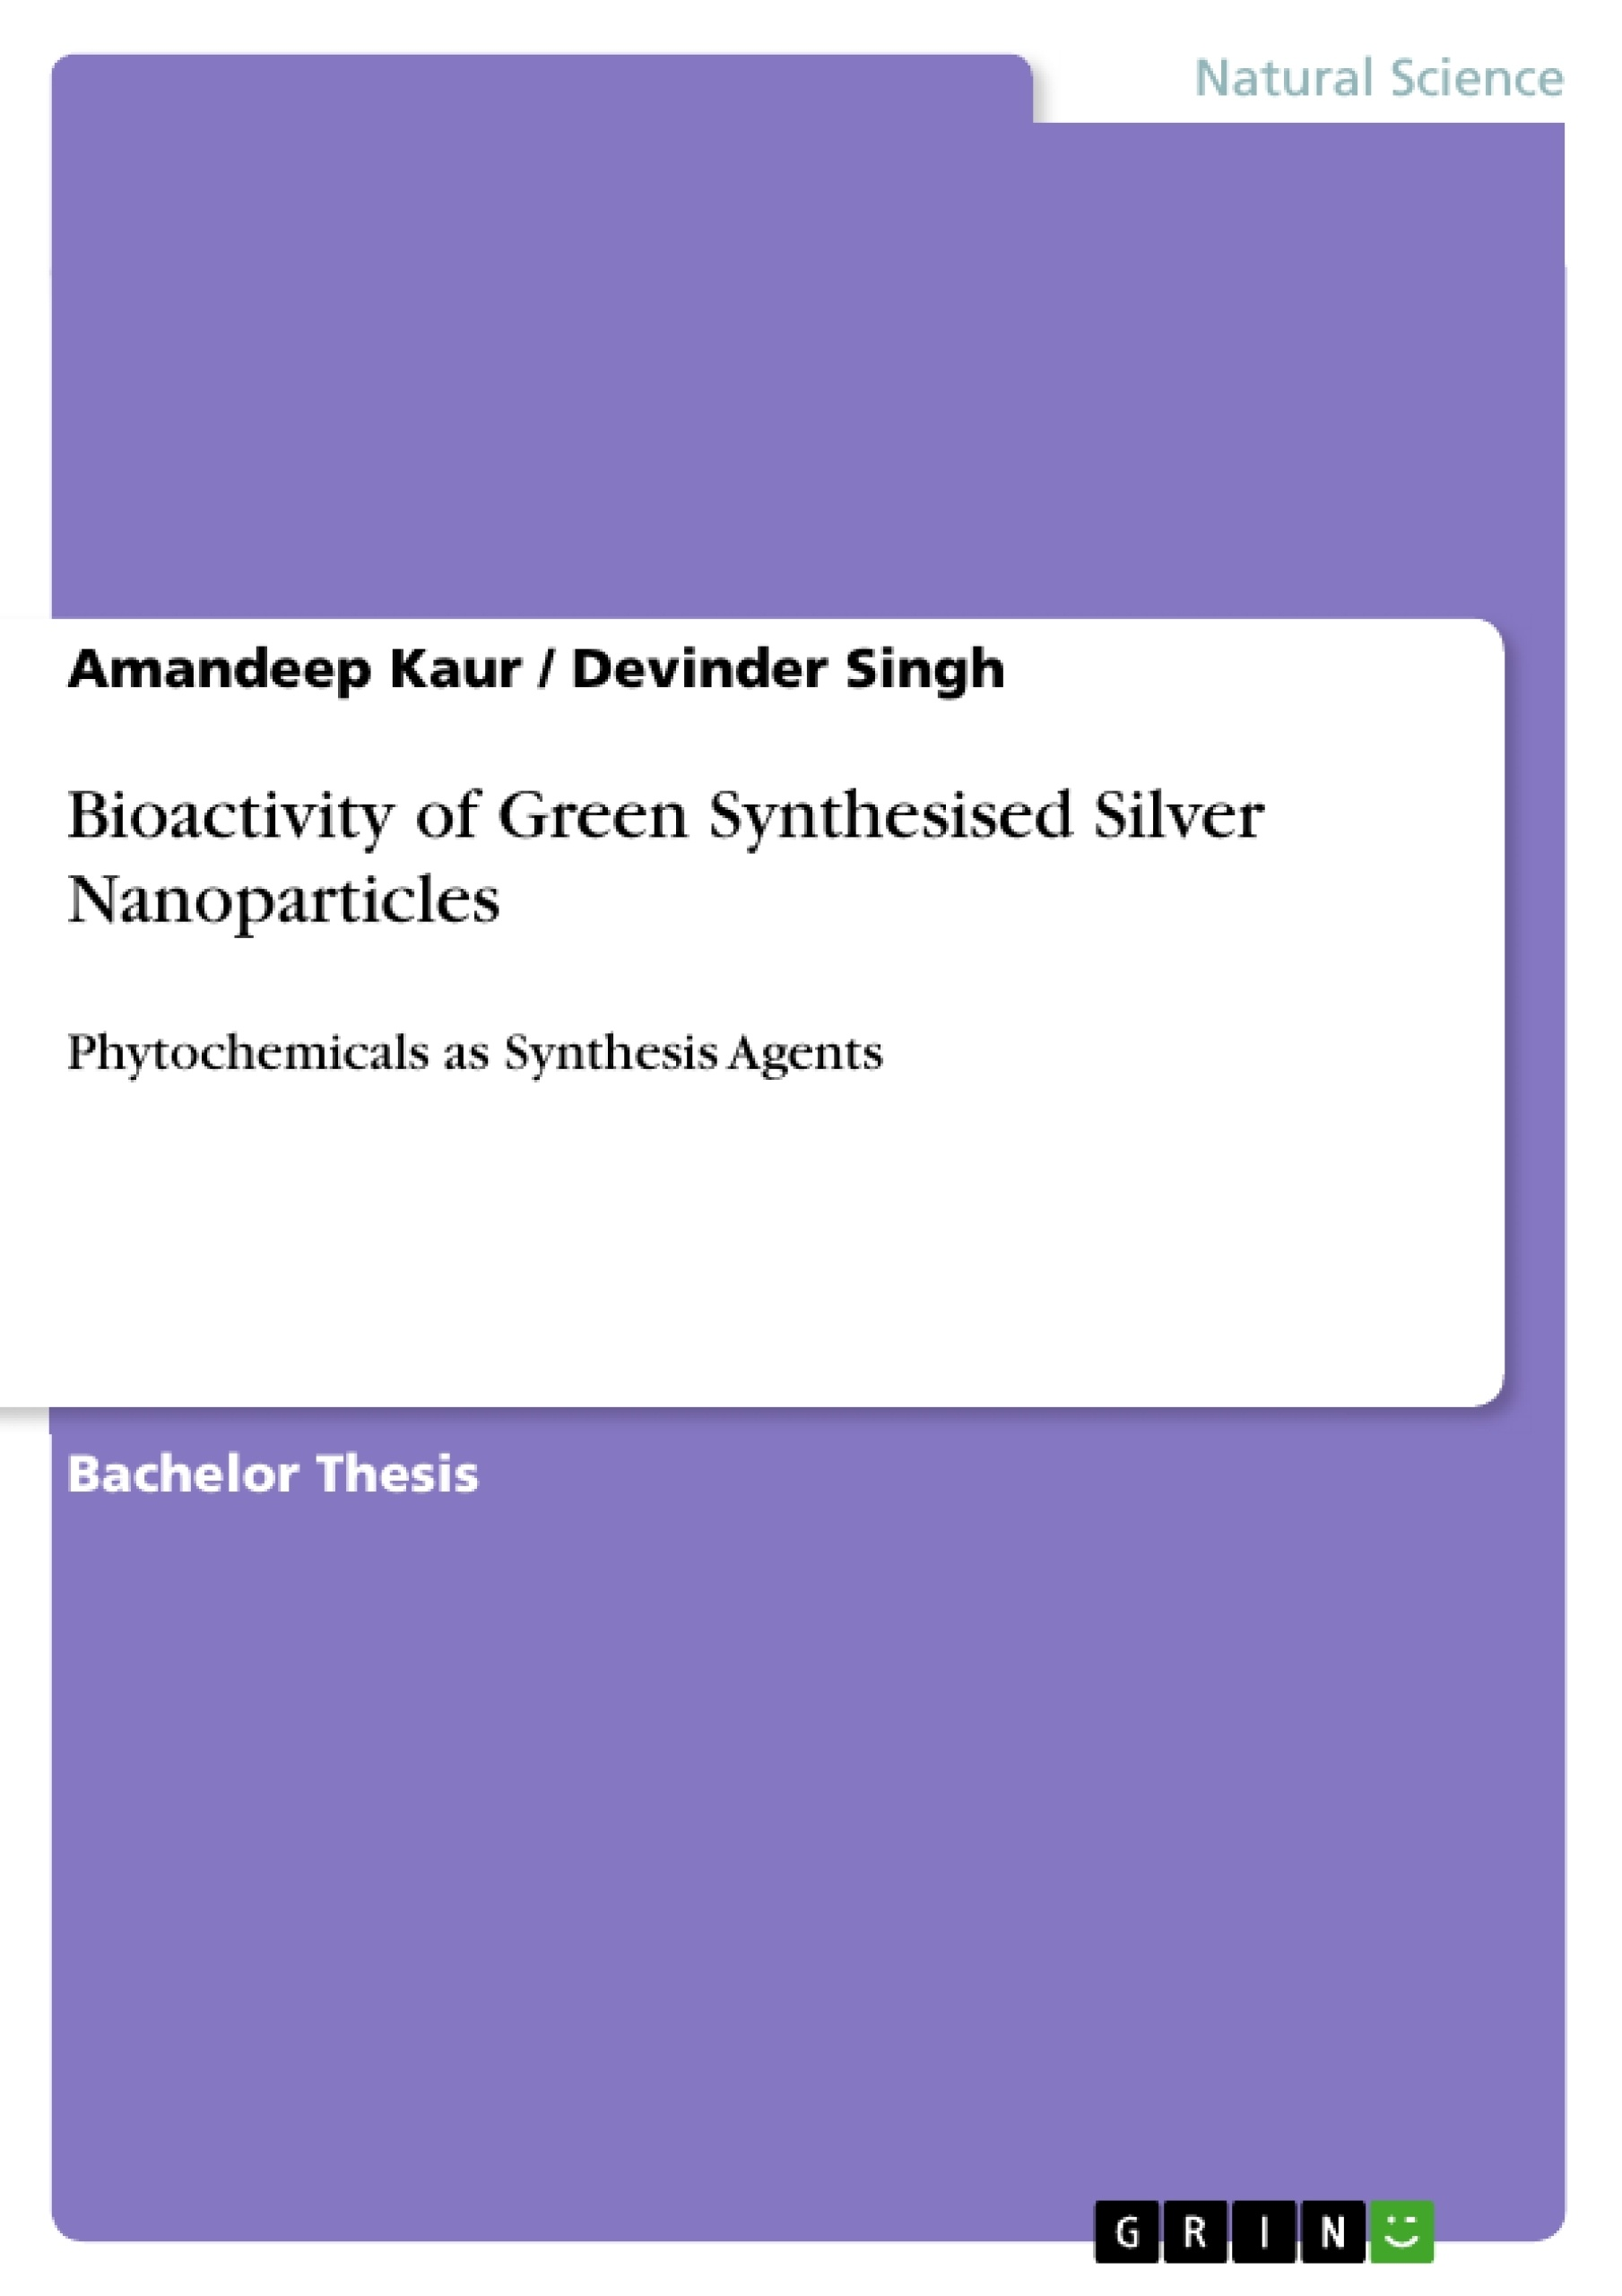 Title: Bioactivity of Green Synthesised Silver Nanoparticles